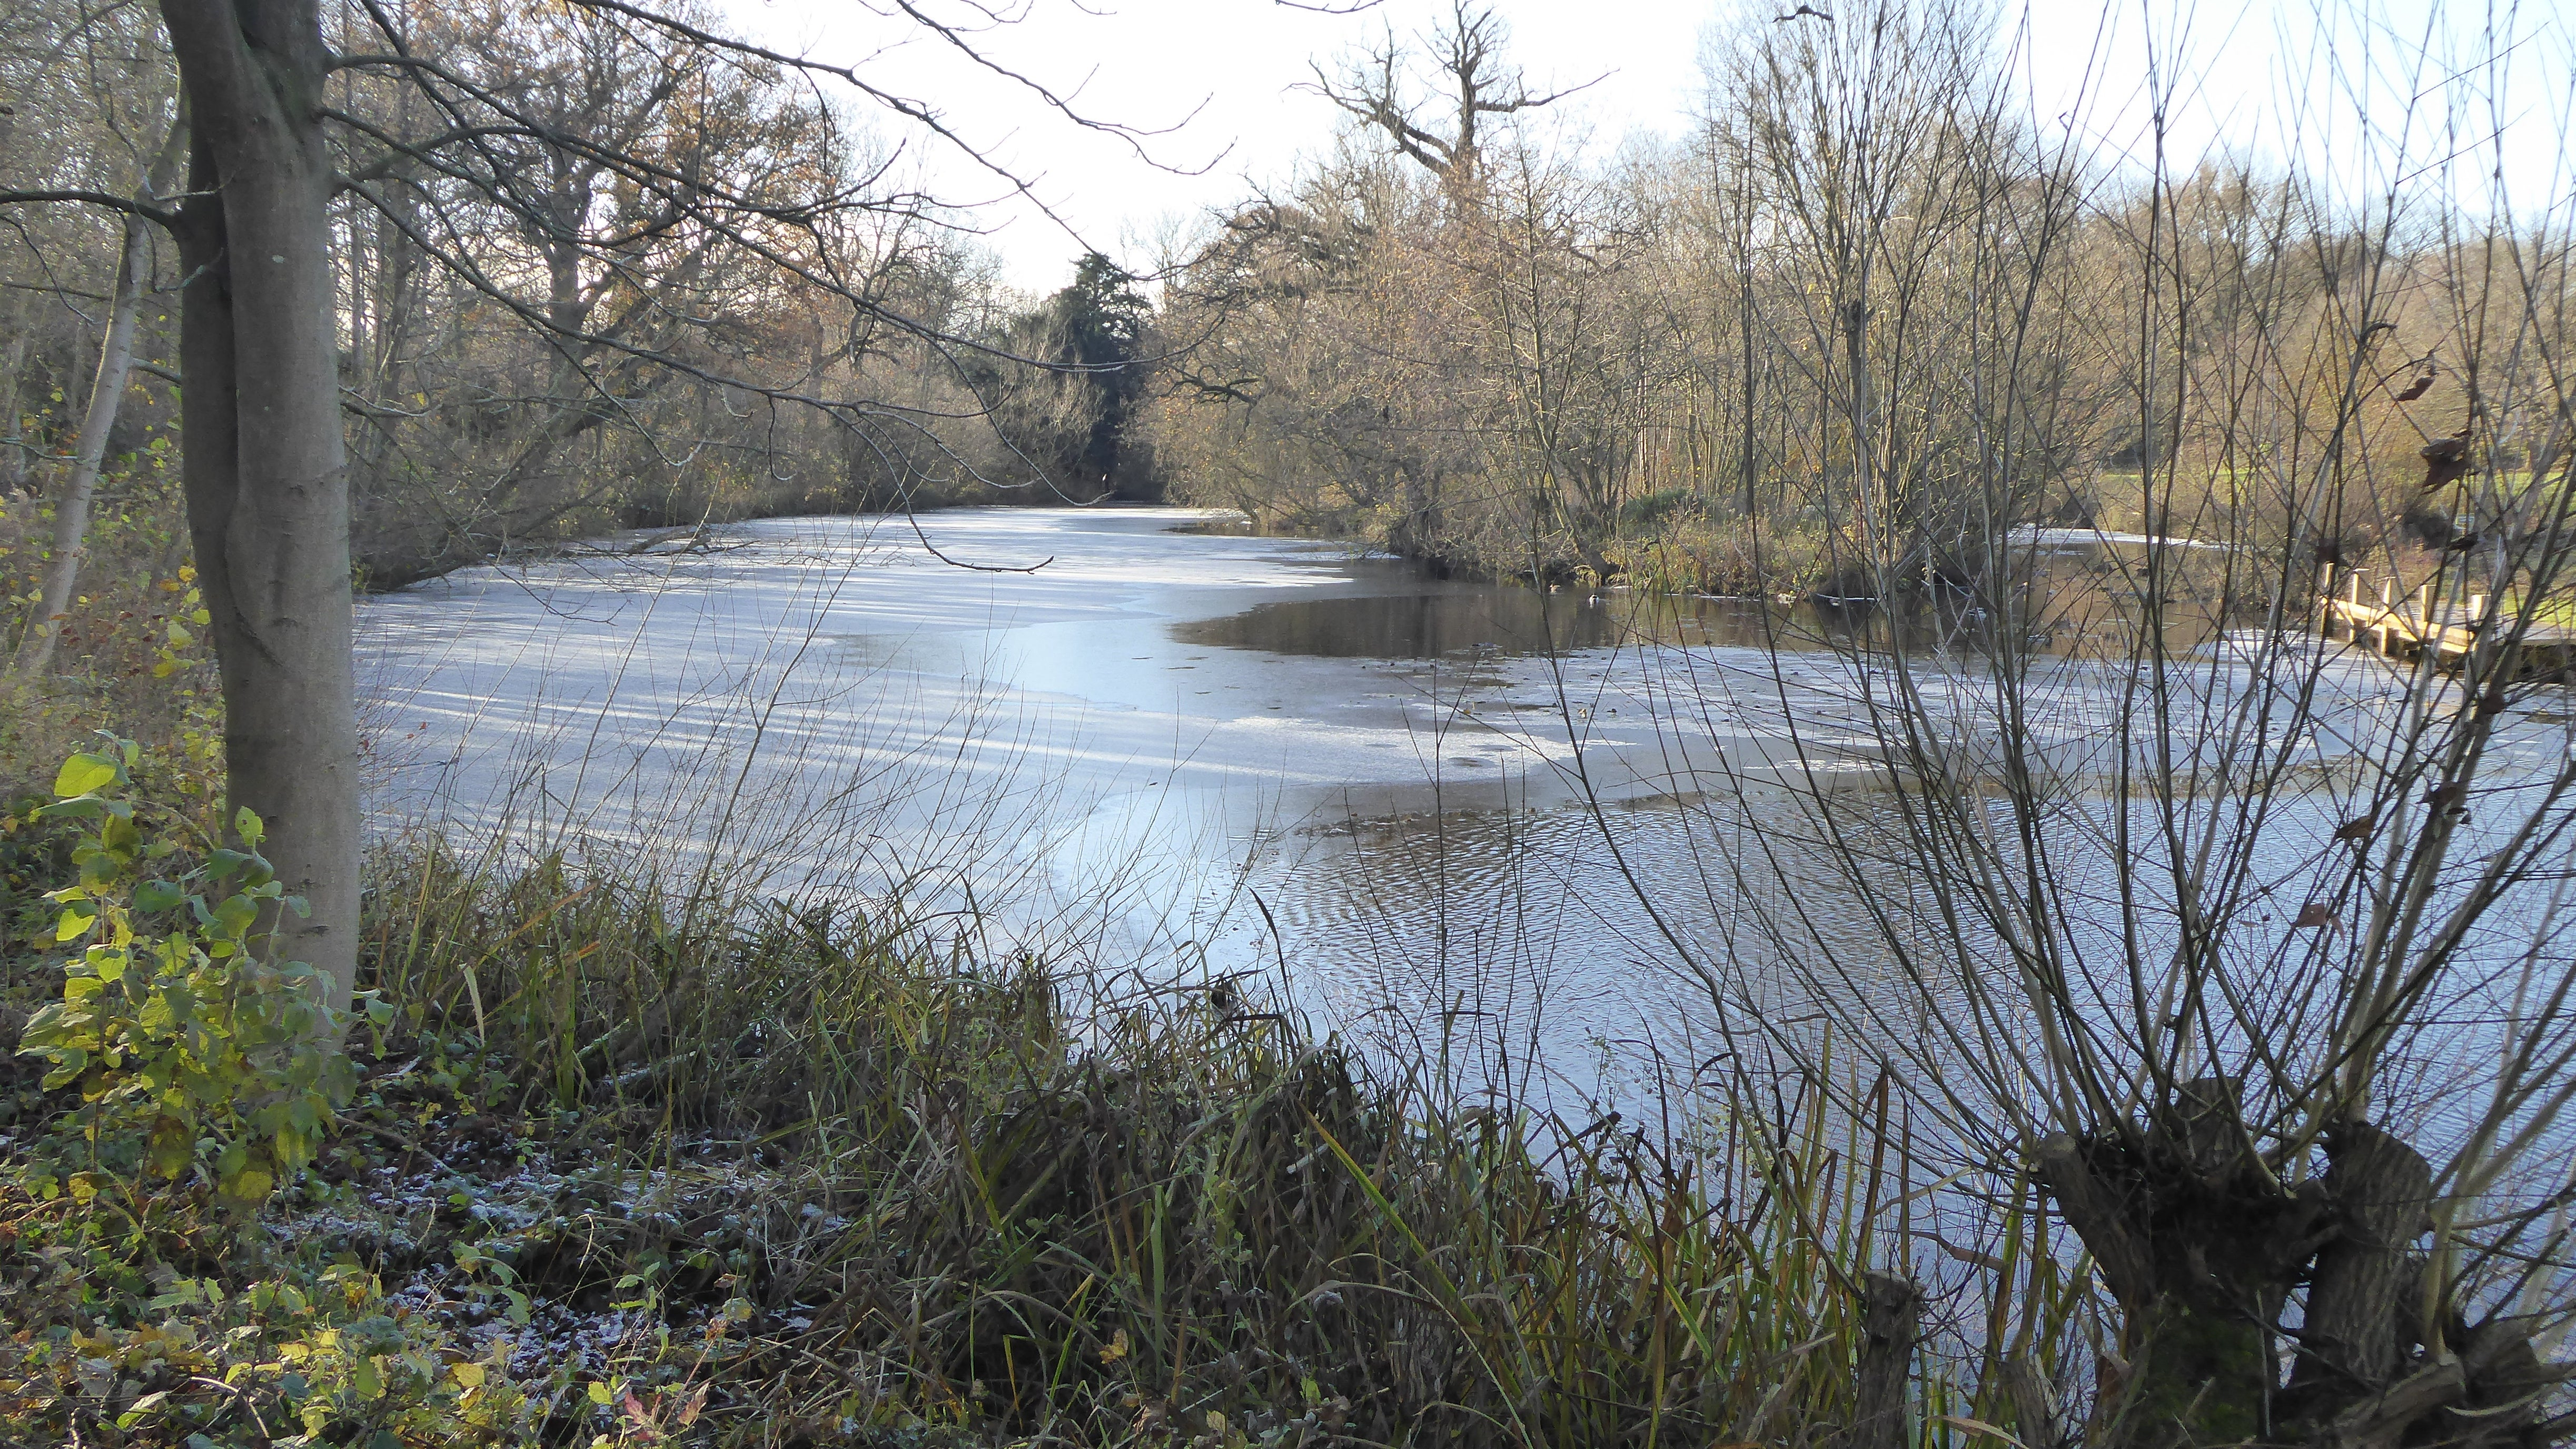 The Decoy Lake, nearly frozen over